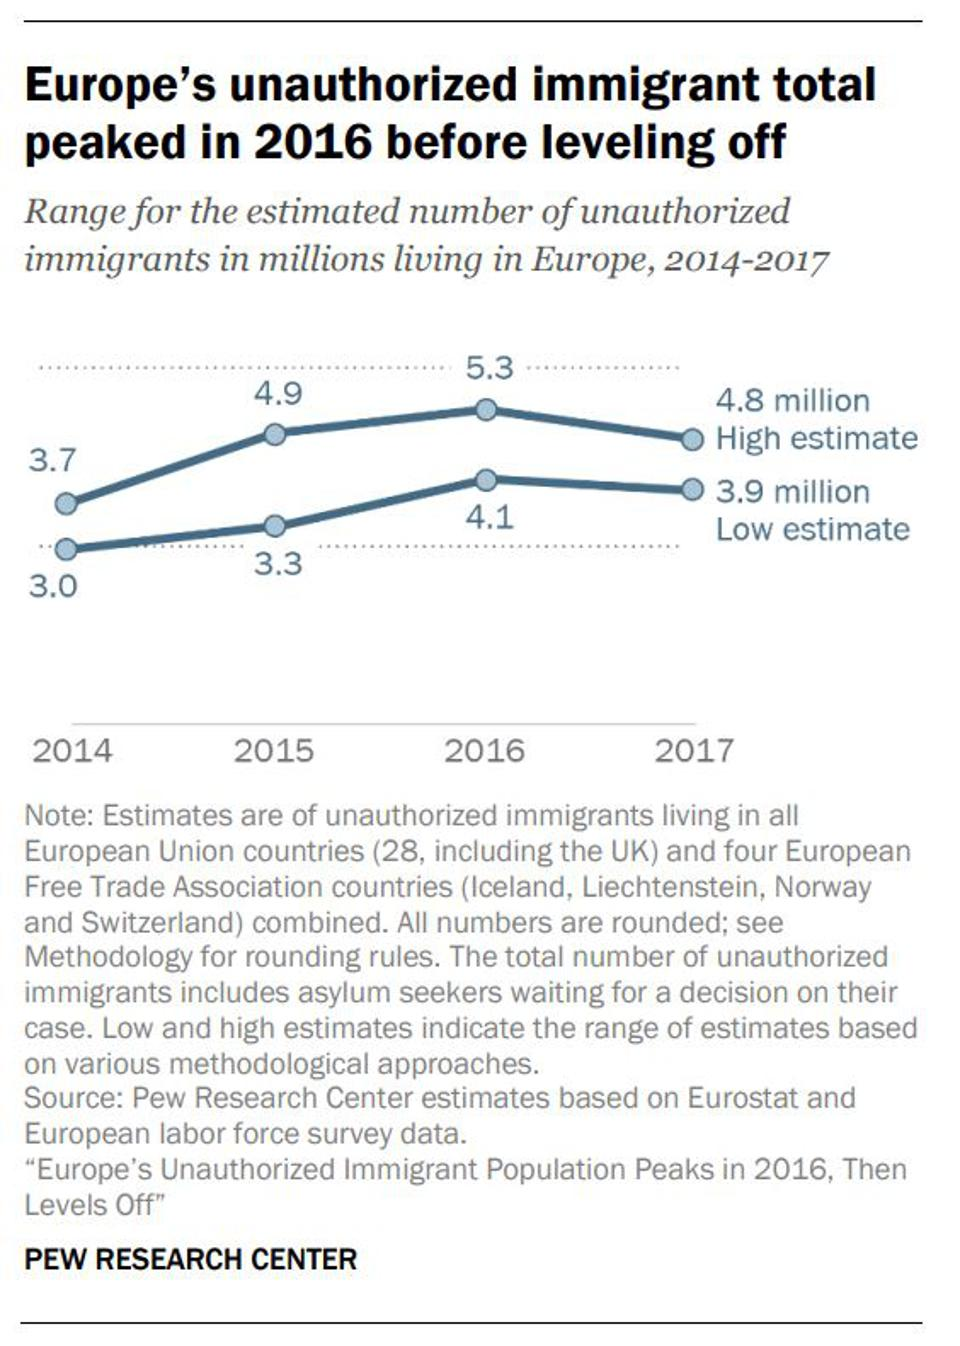 A chart showing the unauthorized immigrant population in Europe 2014-2016